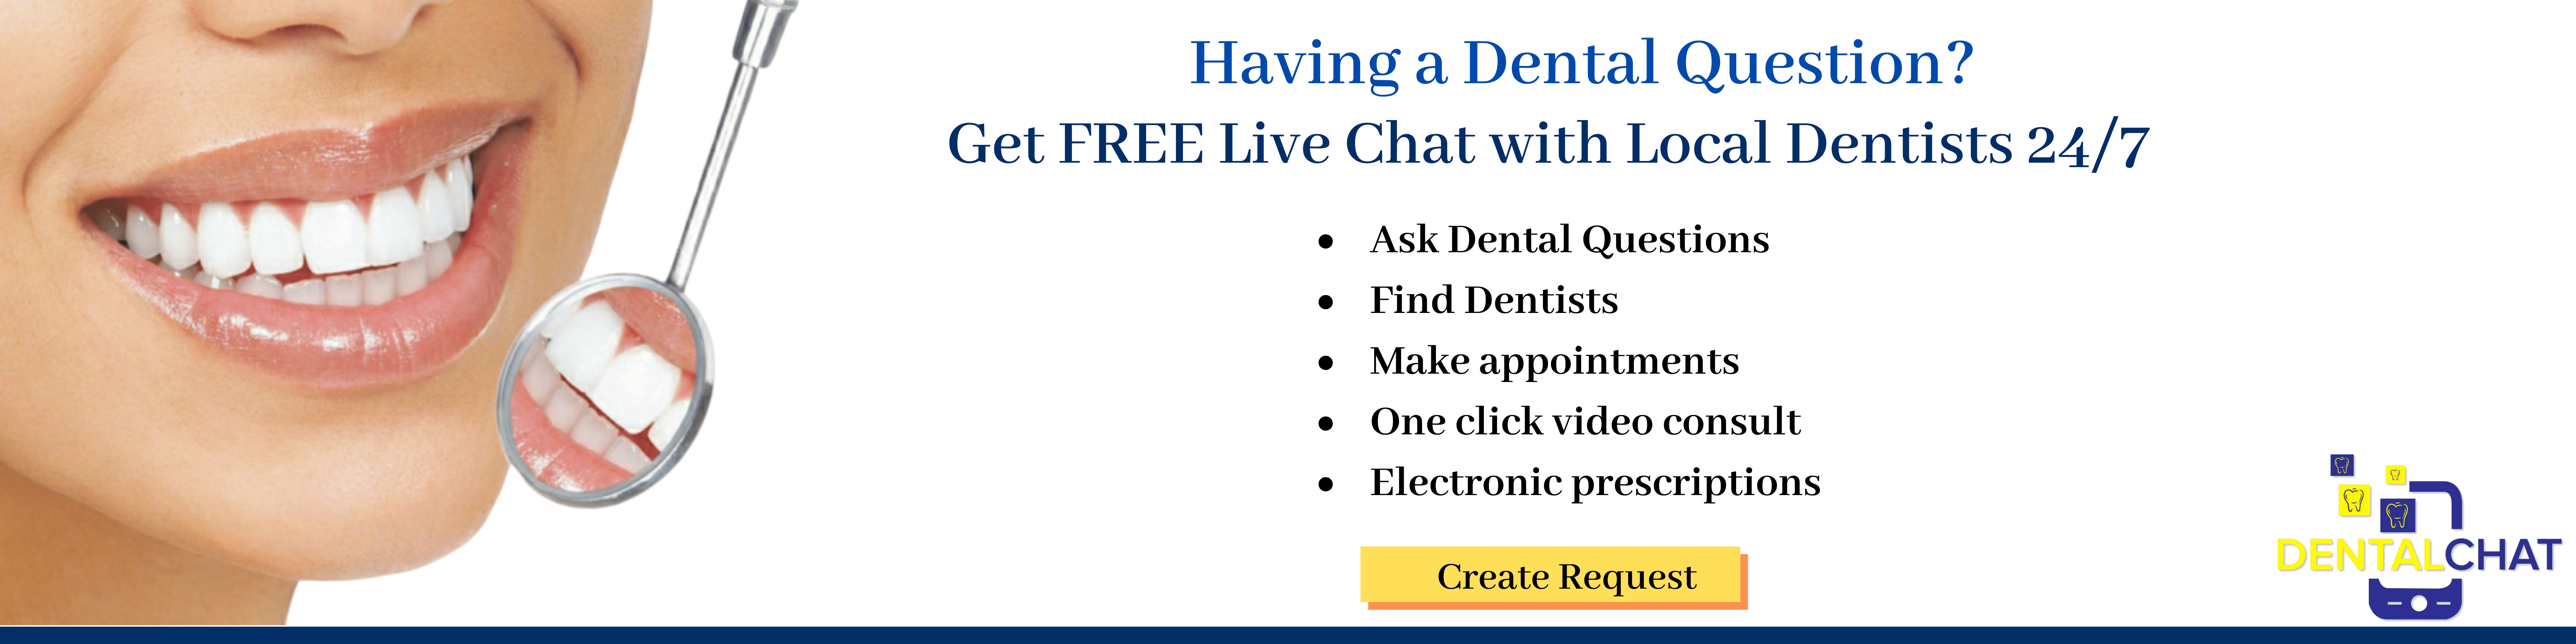 Local Dentists Communication Chat, Answering Dentistry Questions Using Teledental Consultation